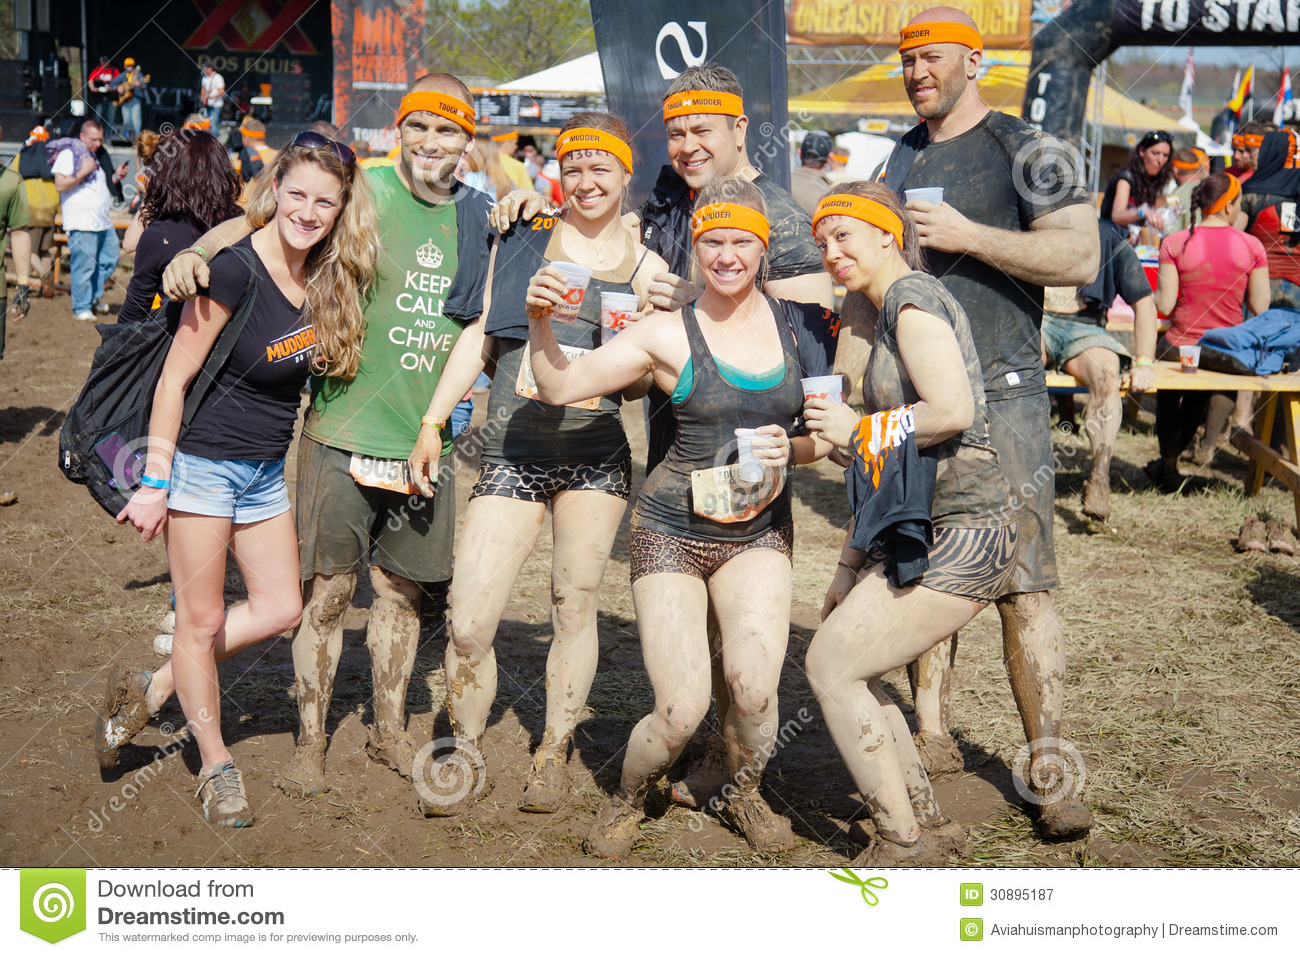 3de7d63bf Racers proudly wearing their headbands and drinking XX beer after the Tough  Mudder competition in Mansfield Ohio on April 27, 2013.